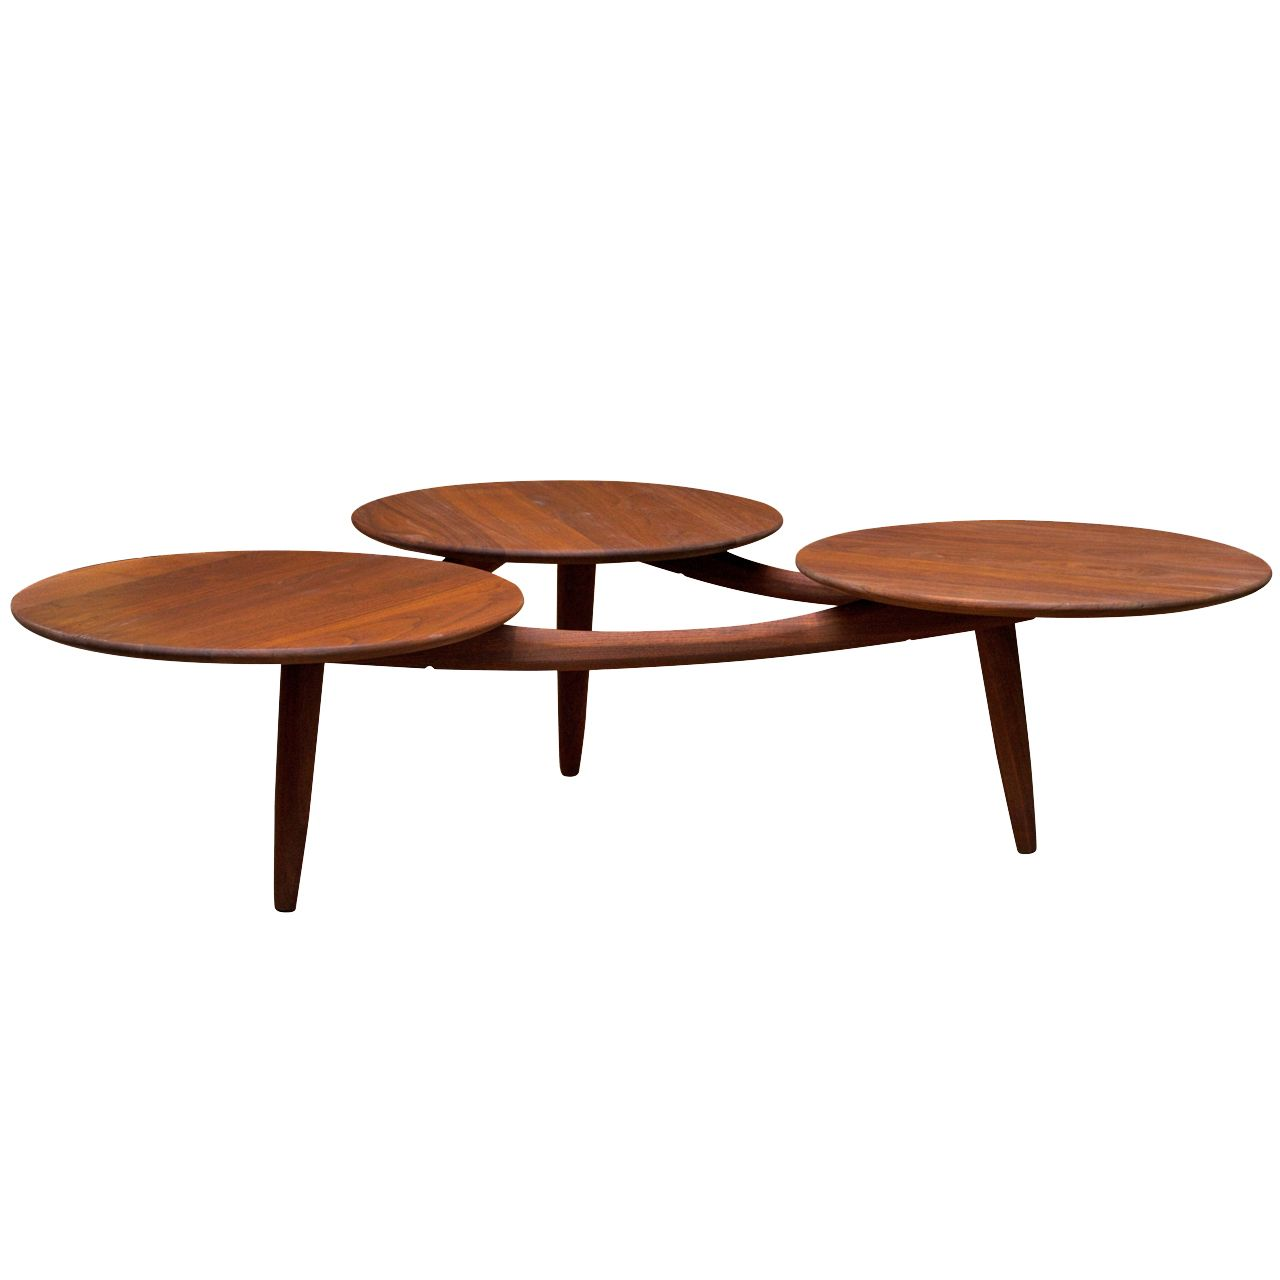 mid-century modern coffee table | modern coffee tables, mid